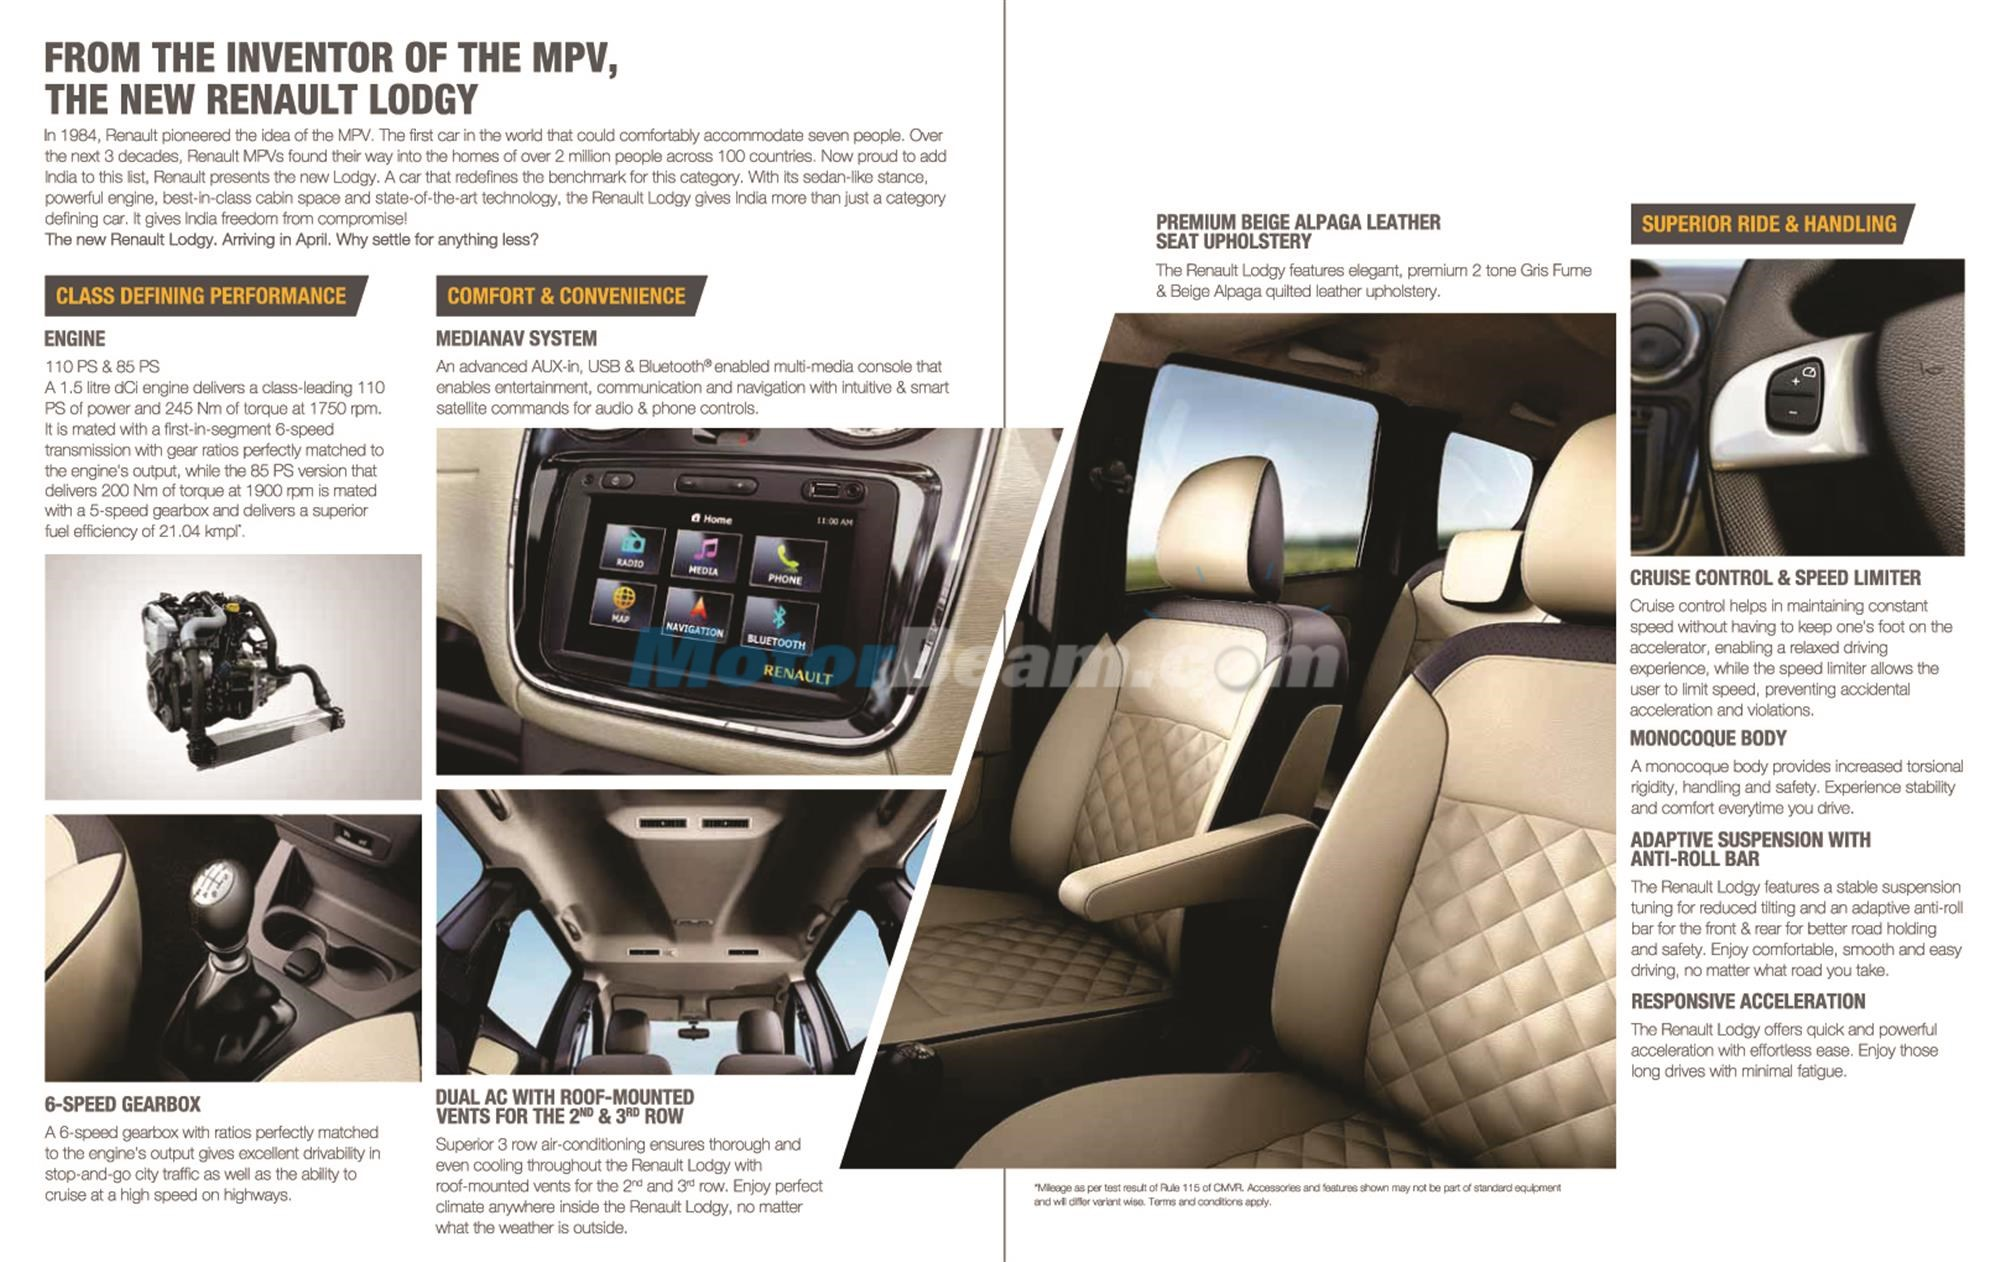 2015 Renault Lodgy Features